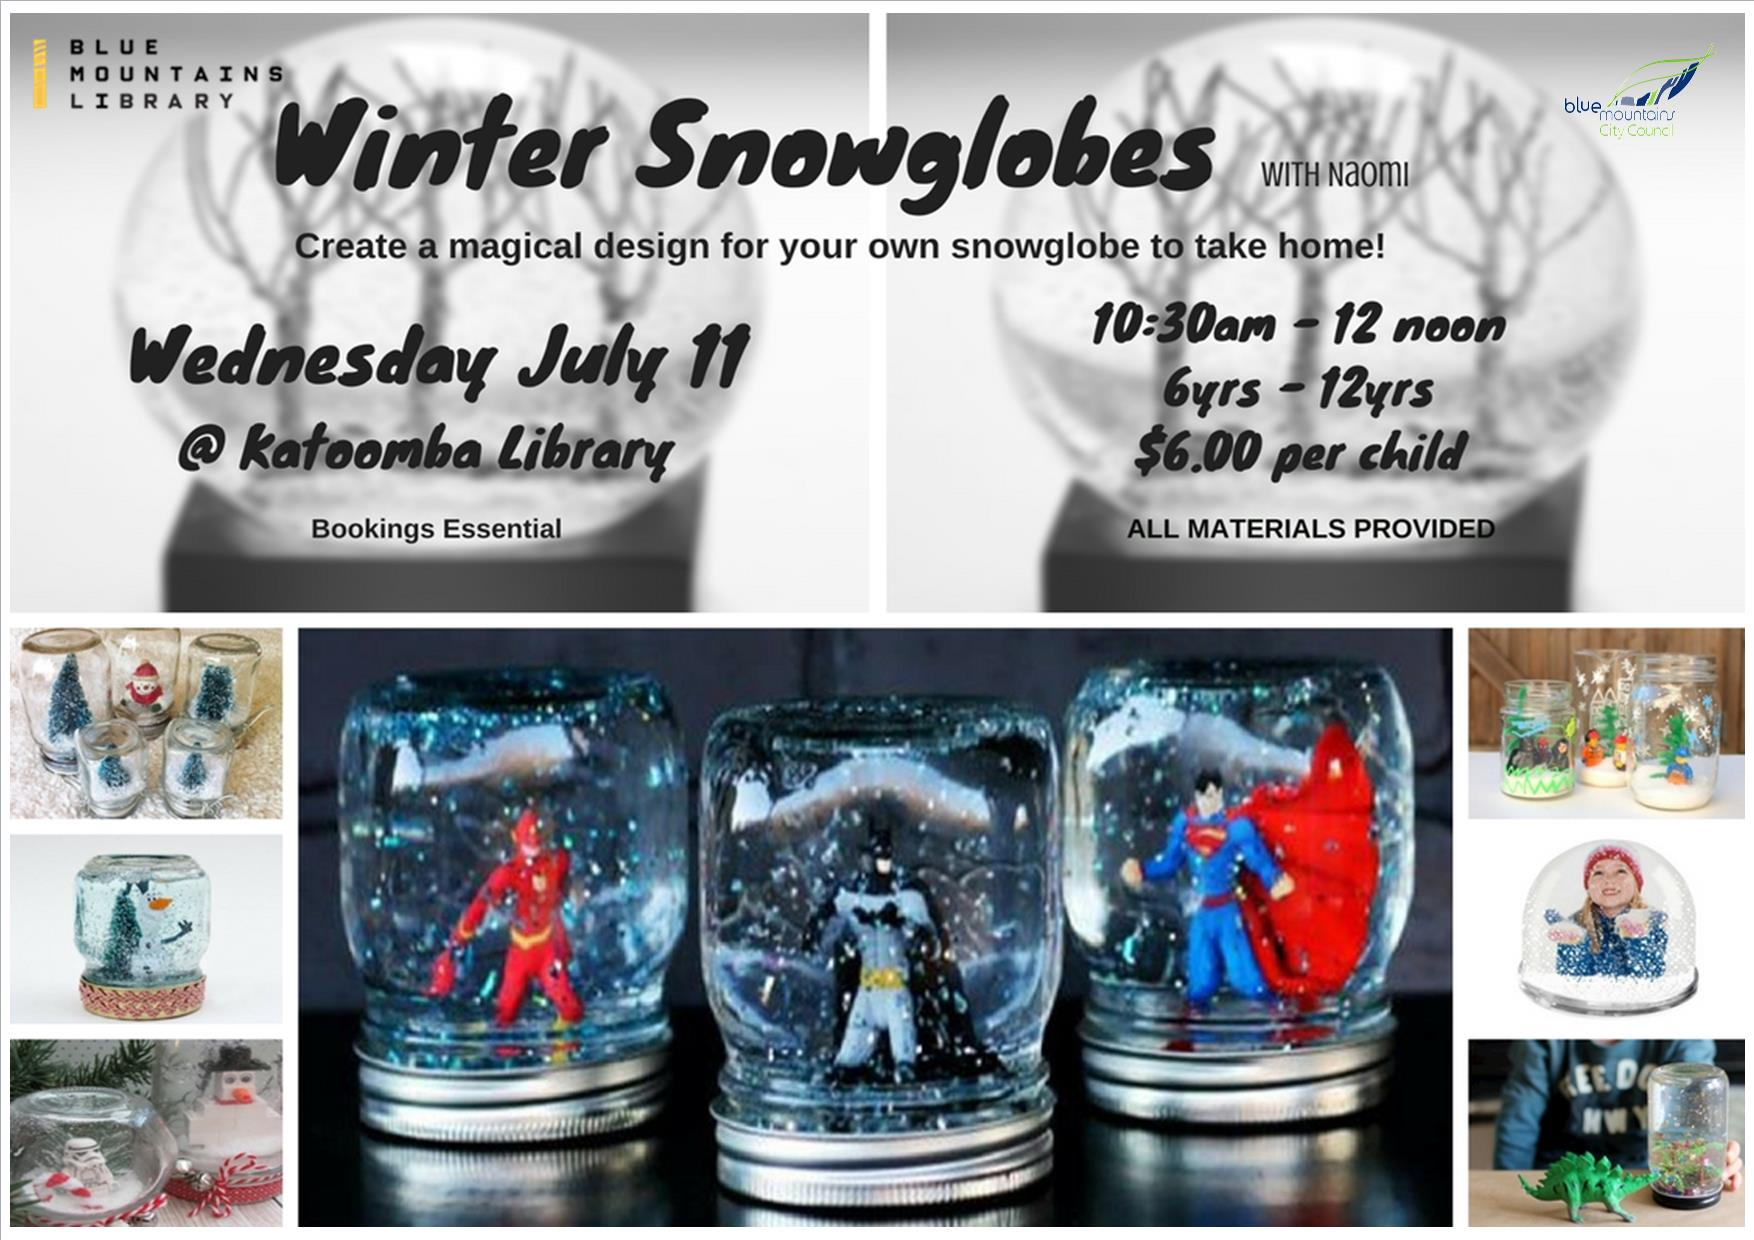 Winter Snowglobes, Katoomba Library, Wednesday 11th July, 10:30 - 12 noon, 6-12 year olds, $6 per child